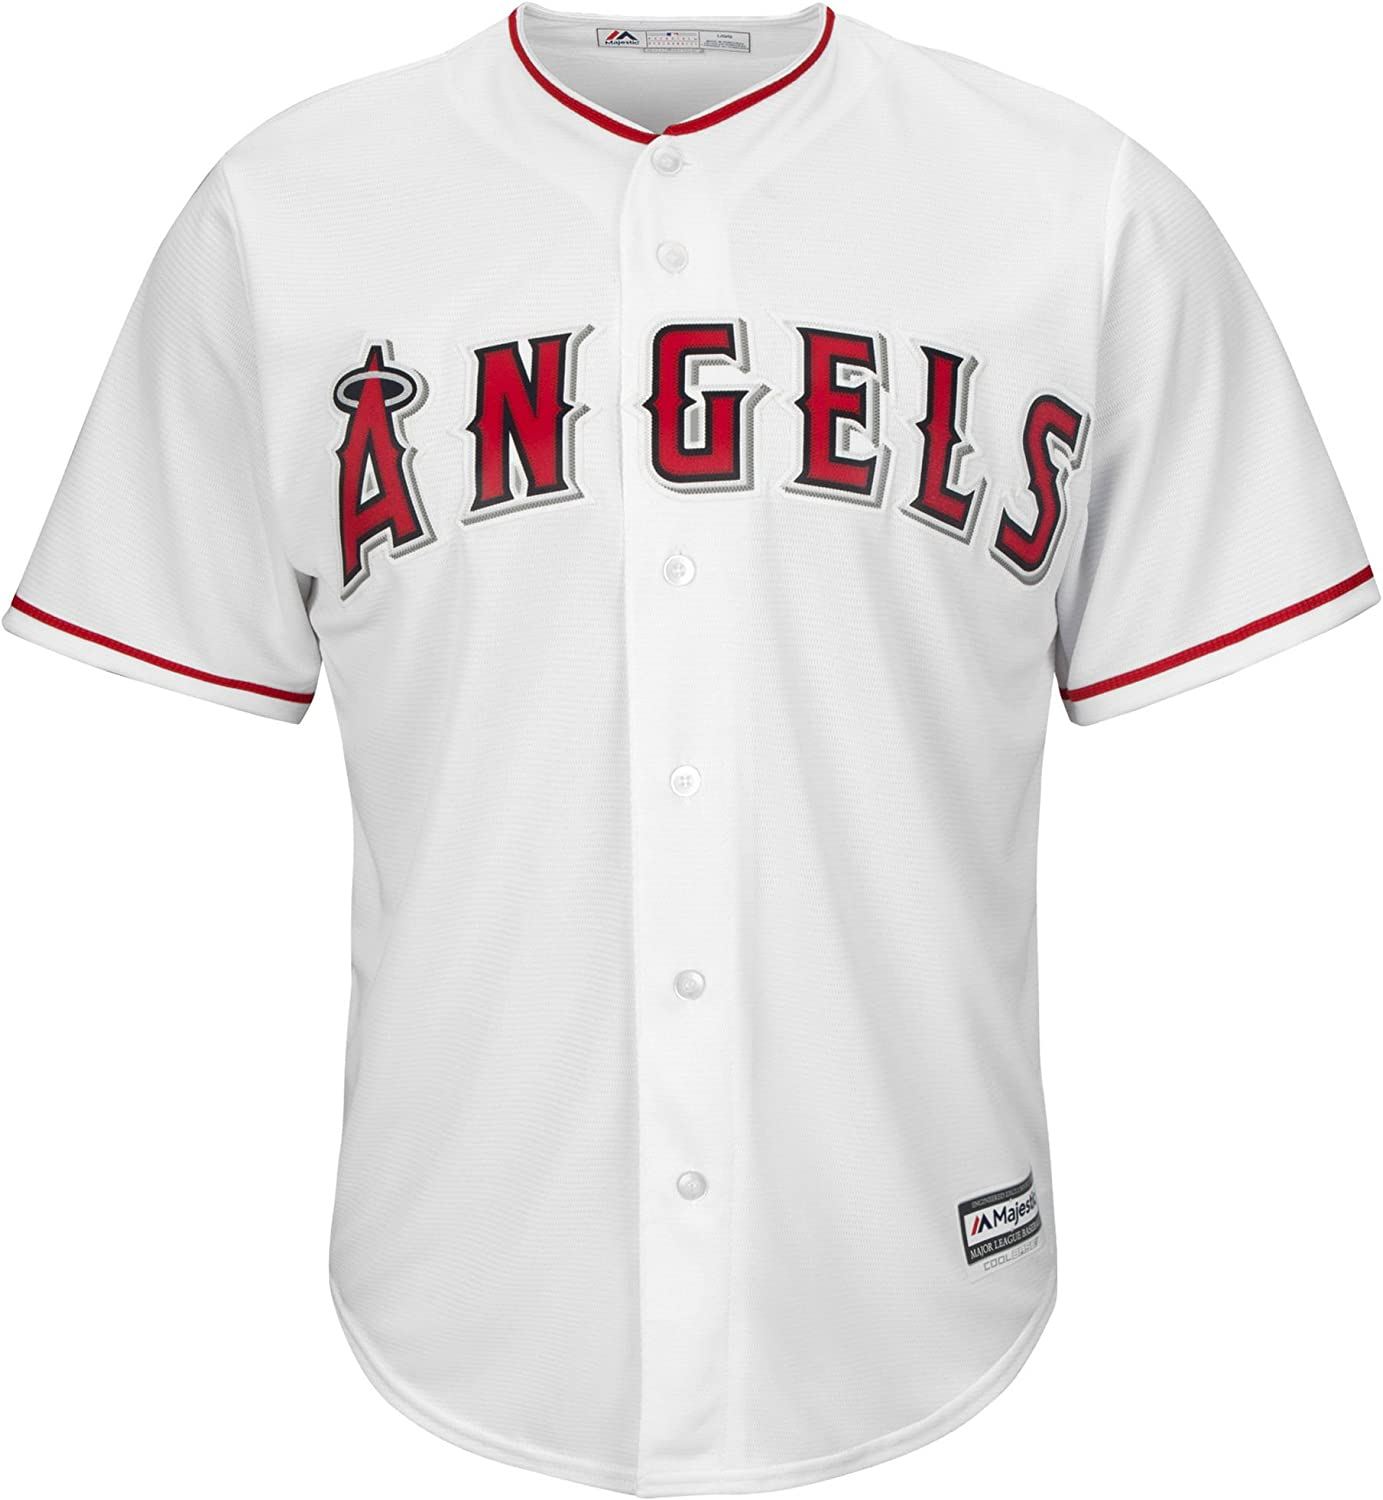 Large 14-16 Majestic Mike Trout Los Angeles Angels of Anaheim MLB Youth White Home Cool Base Replica Player Jersey